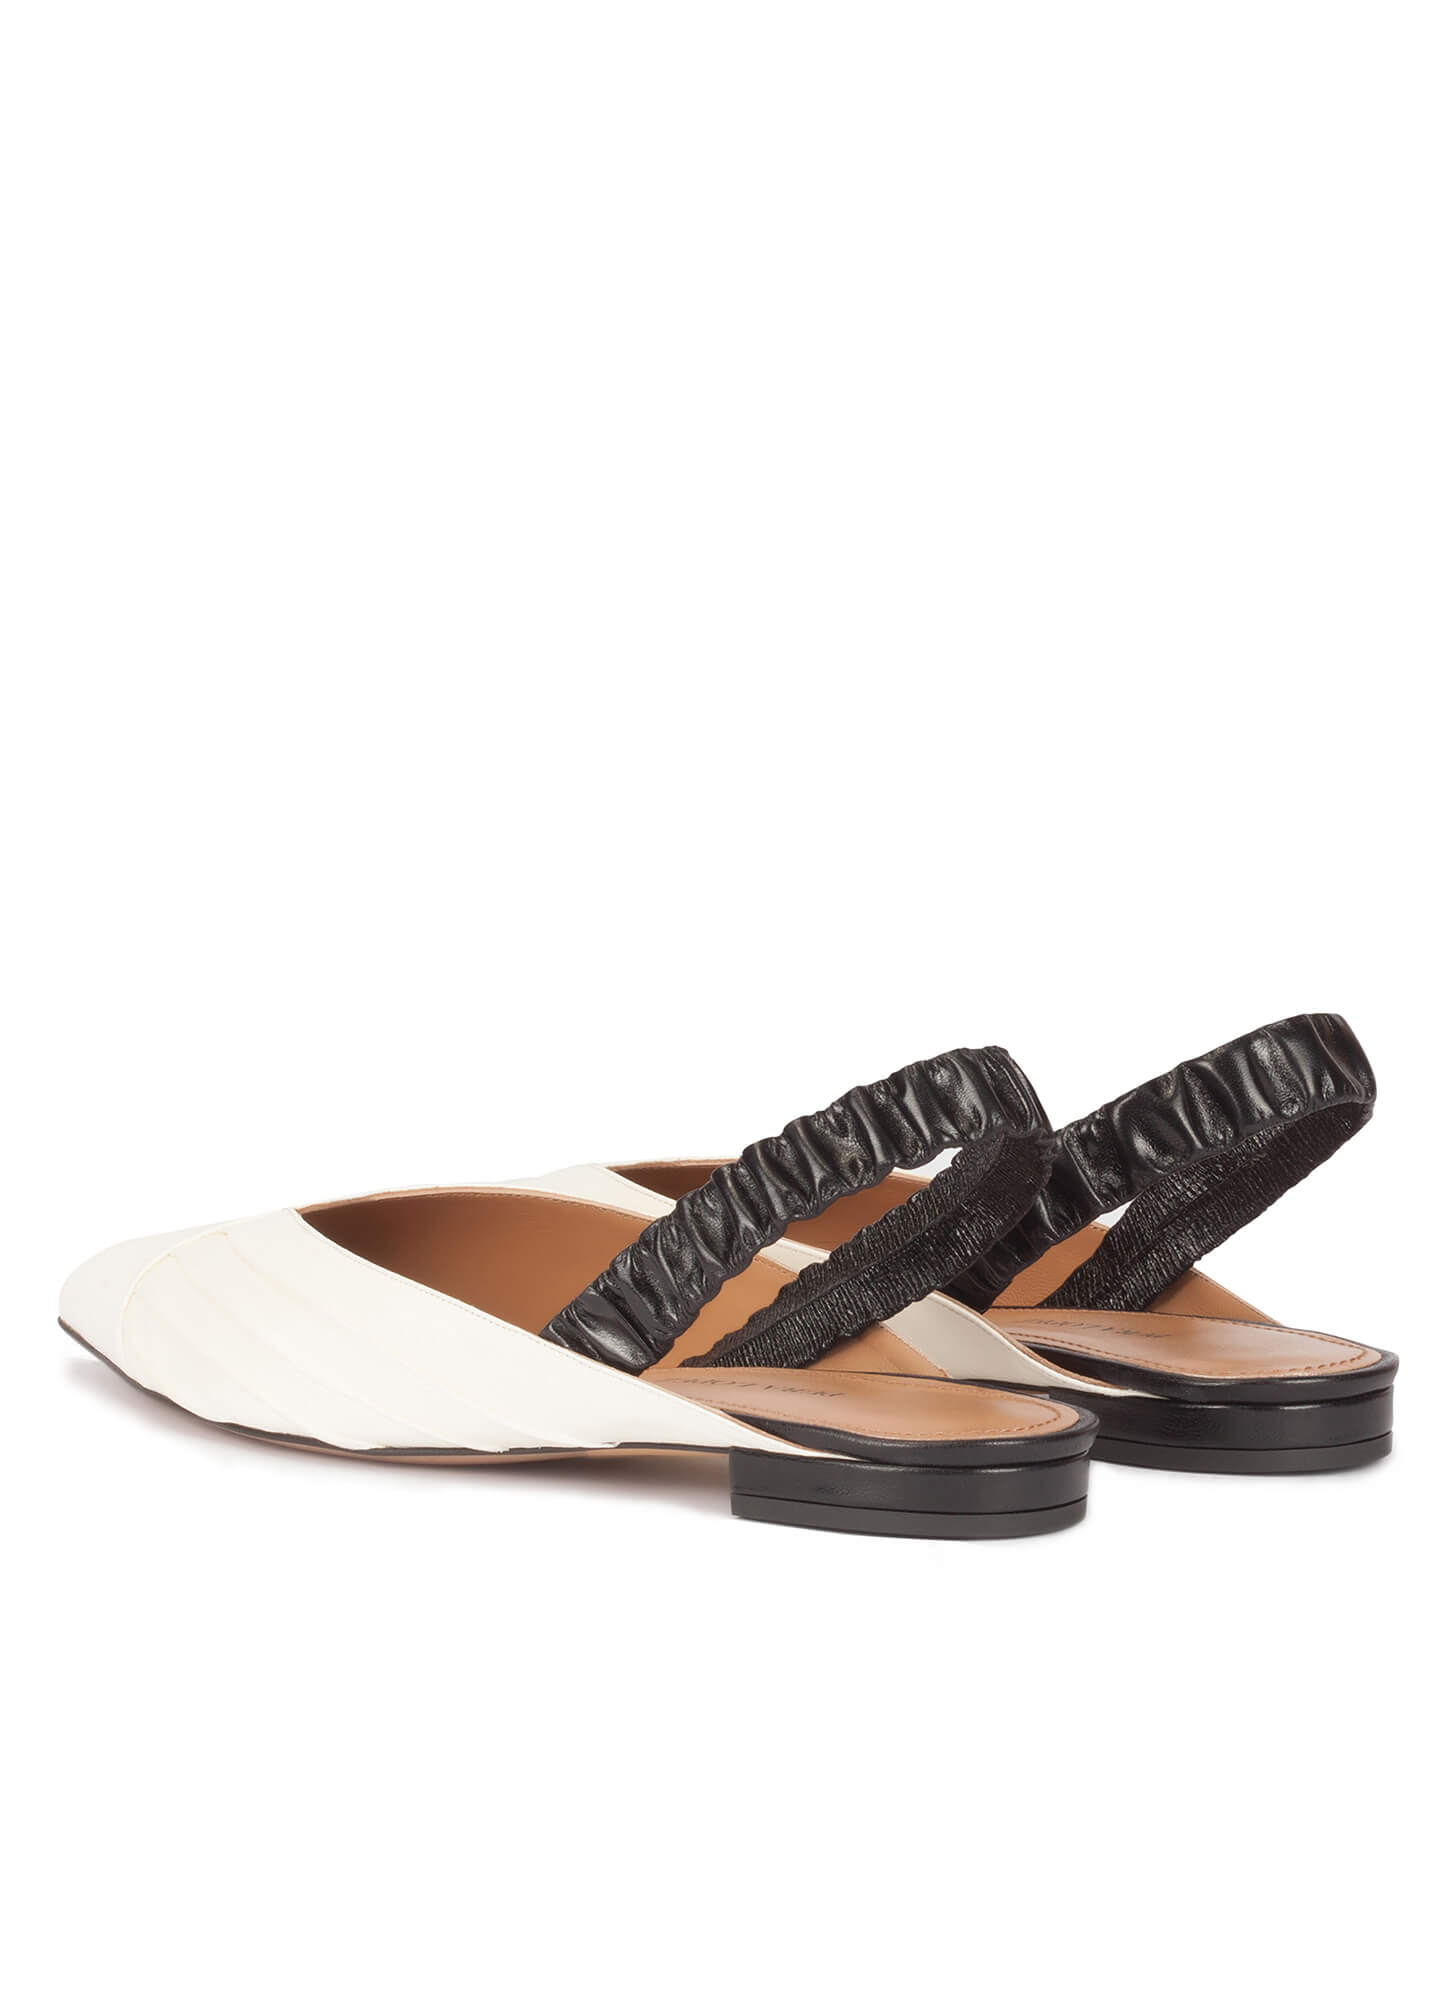 456d9bfa1a8 Oneka new arrivals Pura López. Slingback point-toe flats in white and black  leather